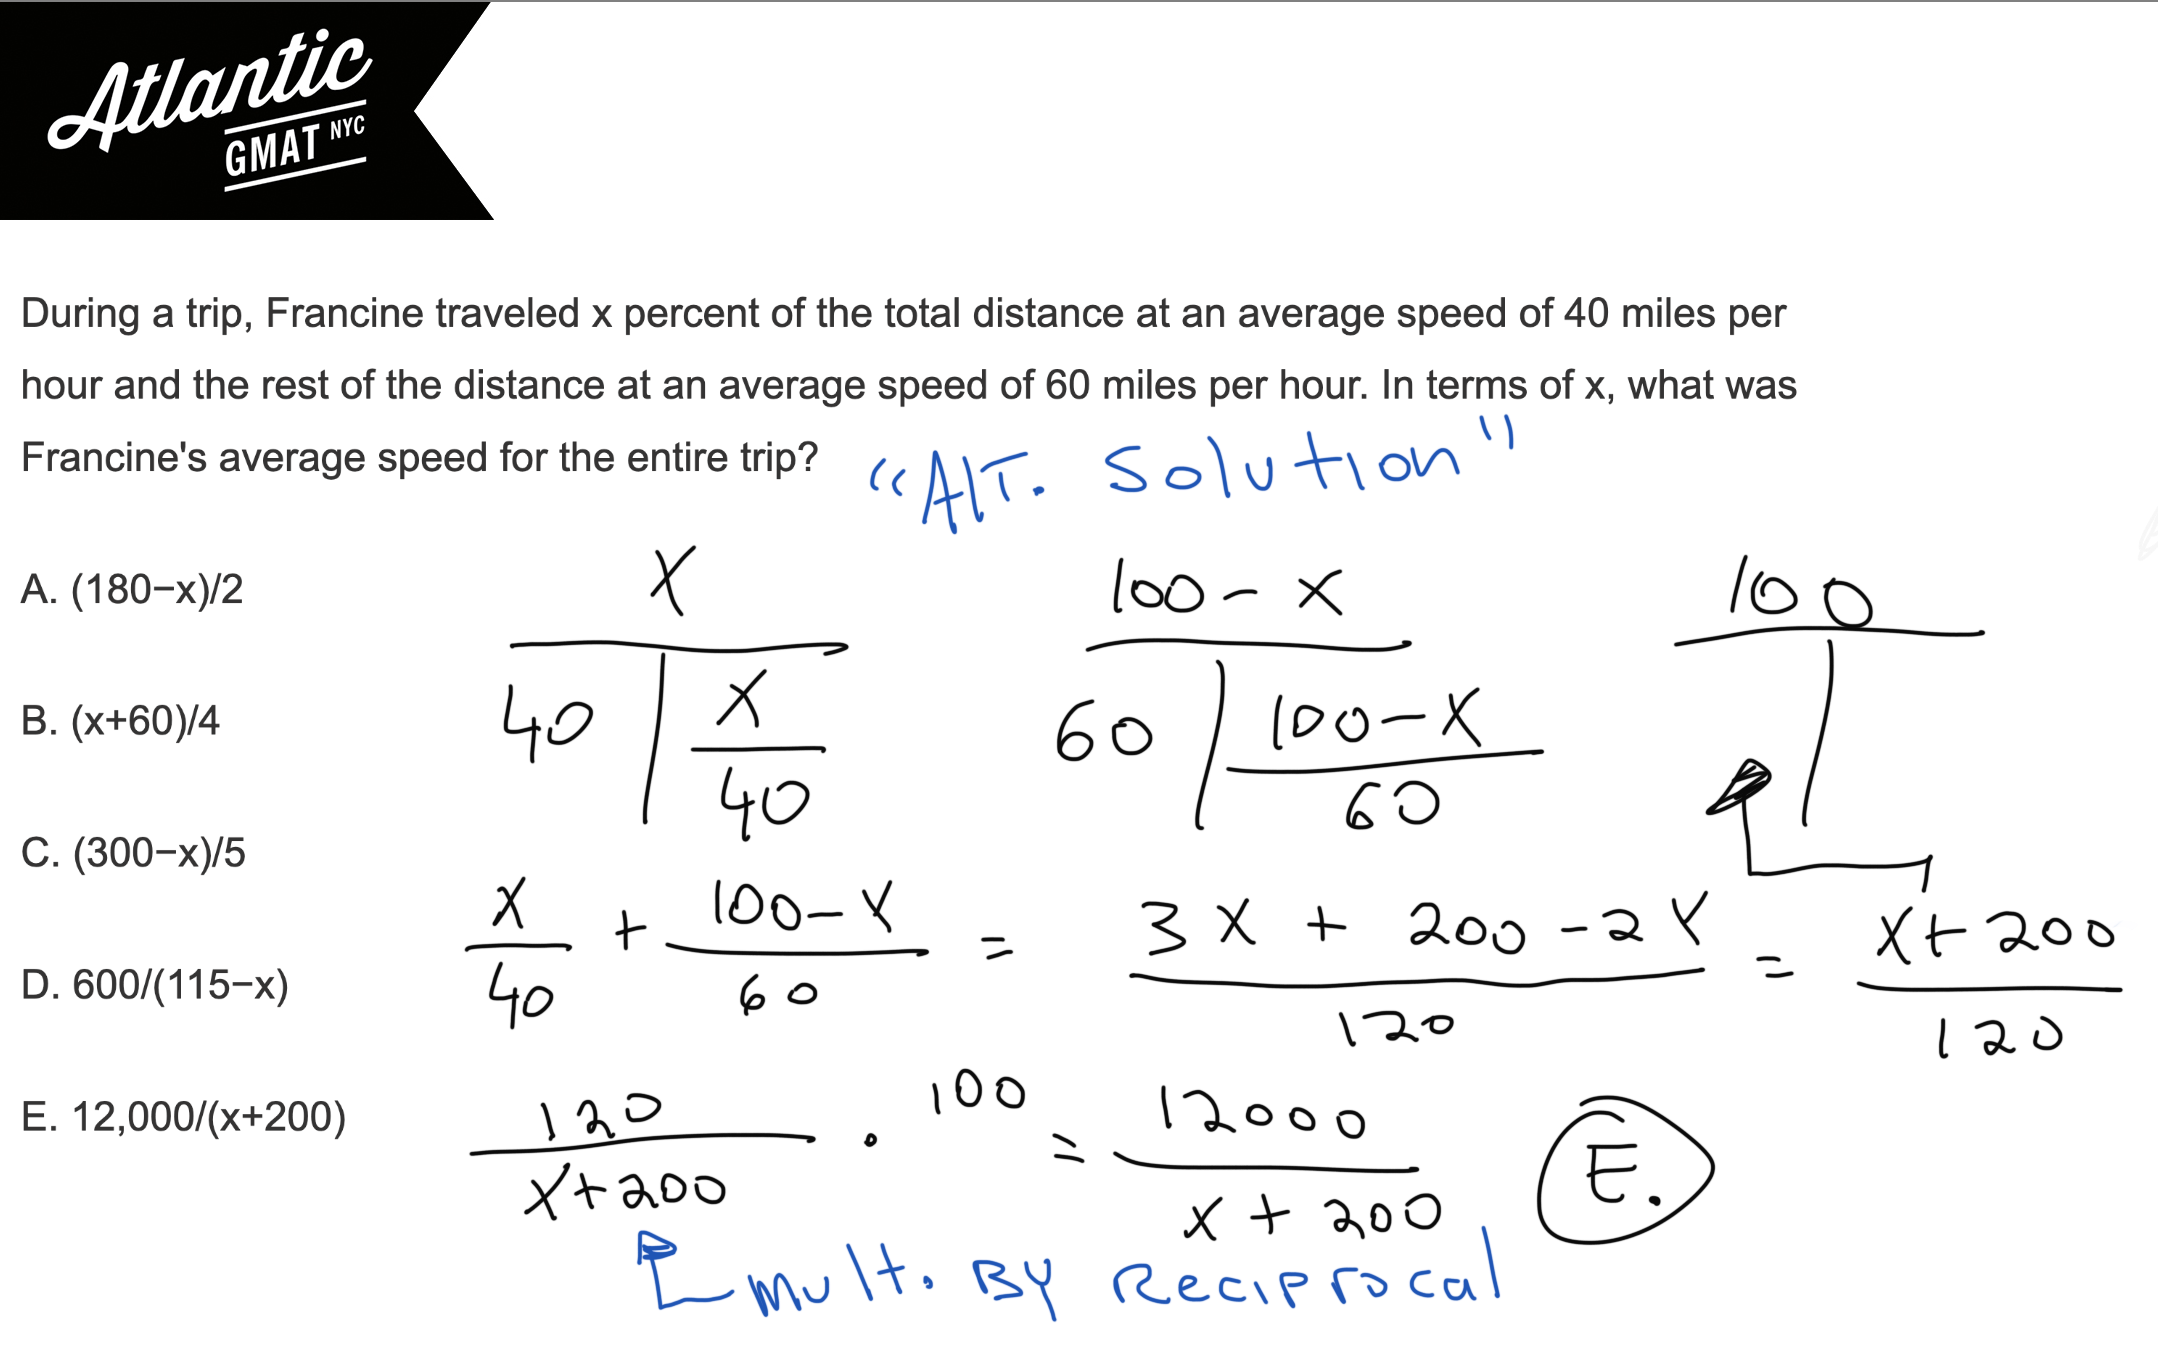 During a trip, Francine traveled x percent of the total distance at an average speed of 40 miles per hour GMAT Explanation Alt Diagram